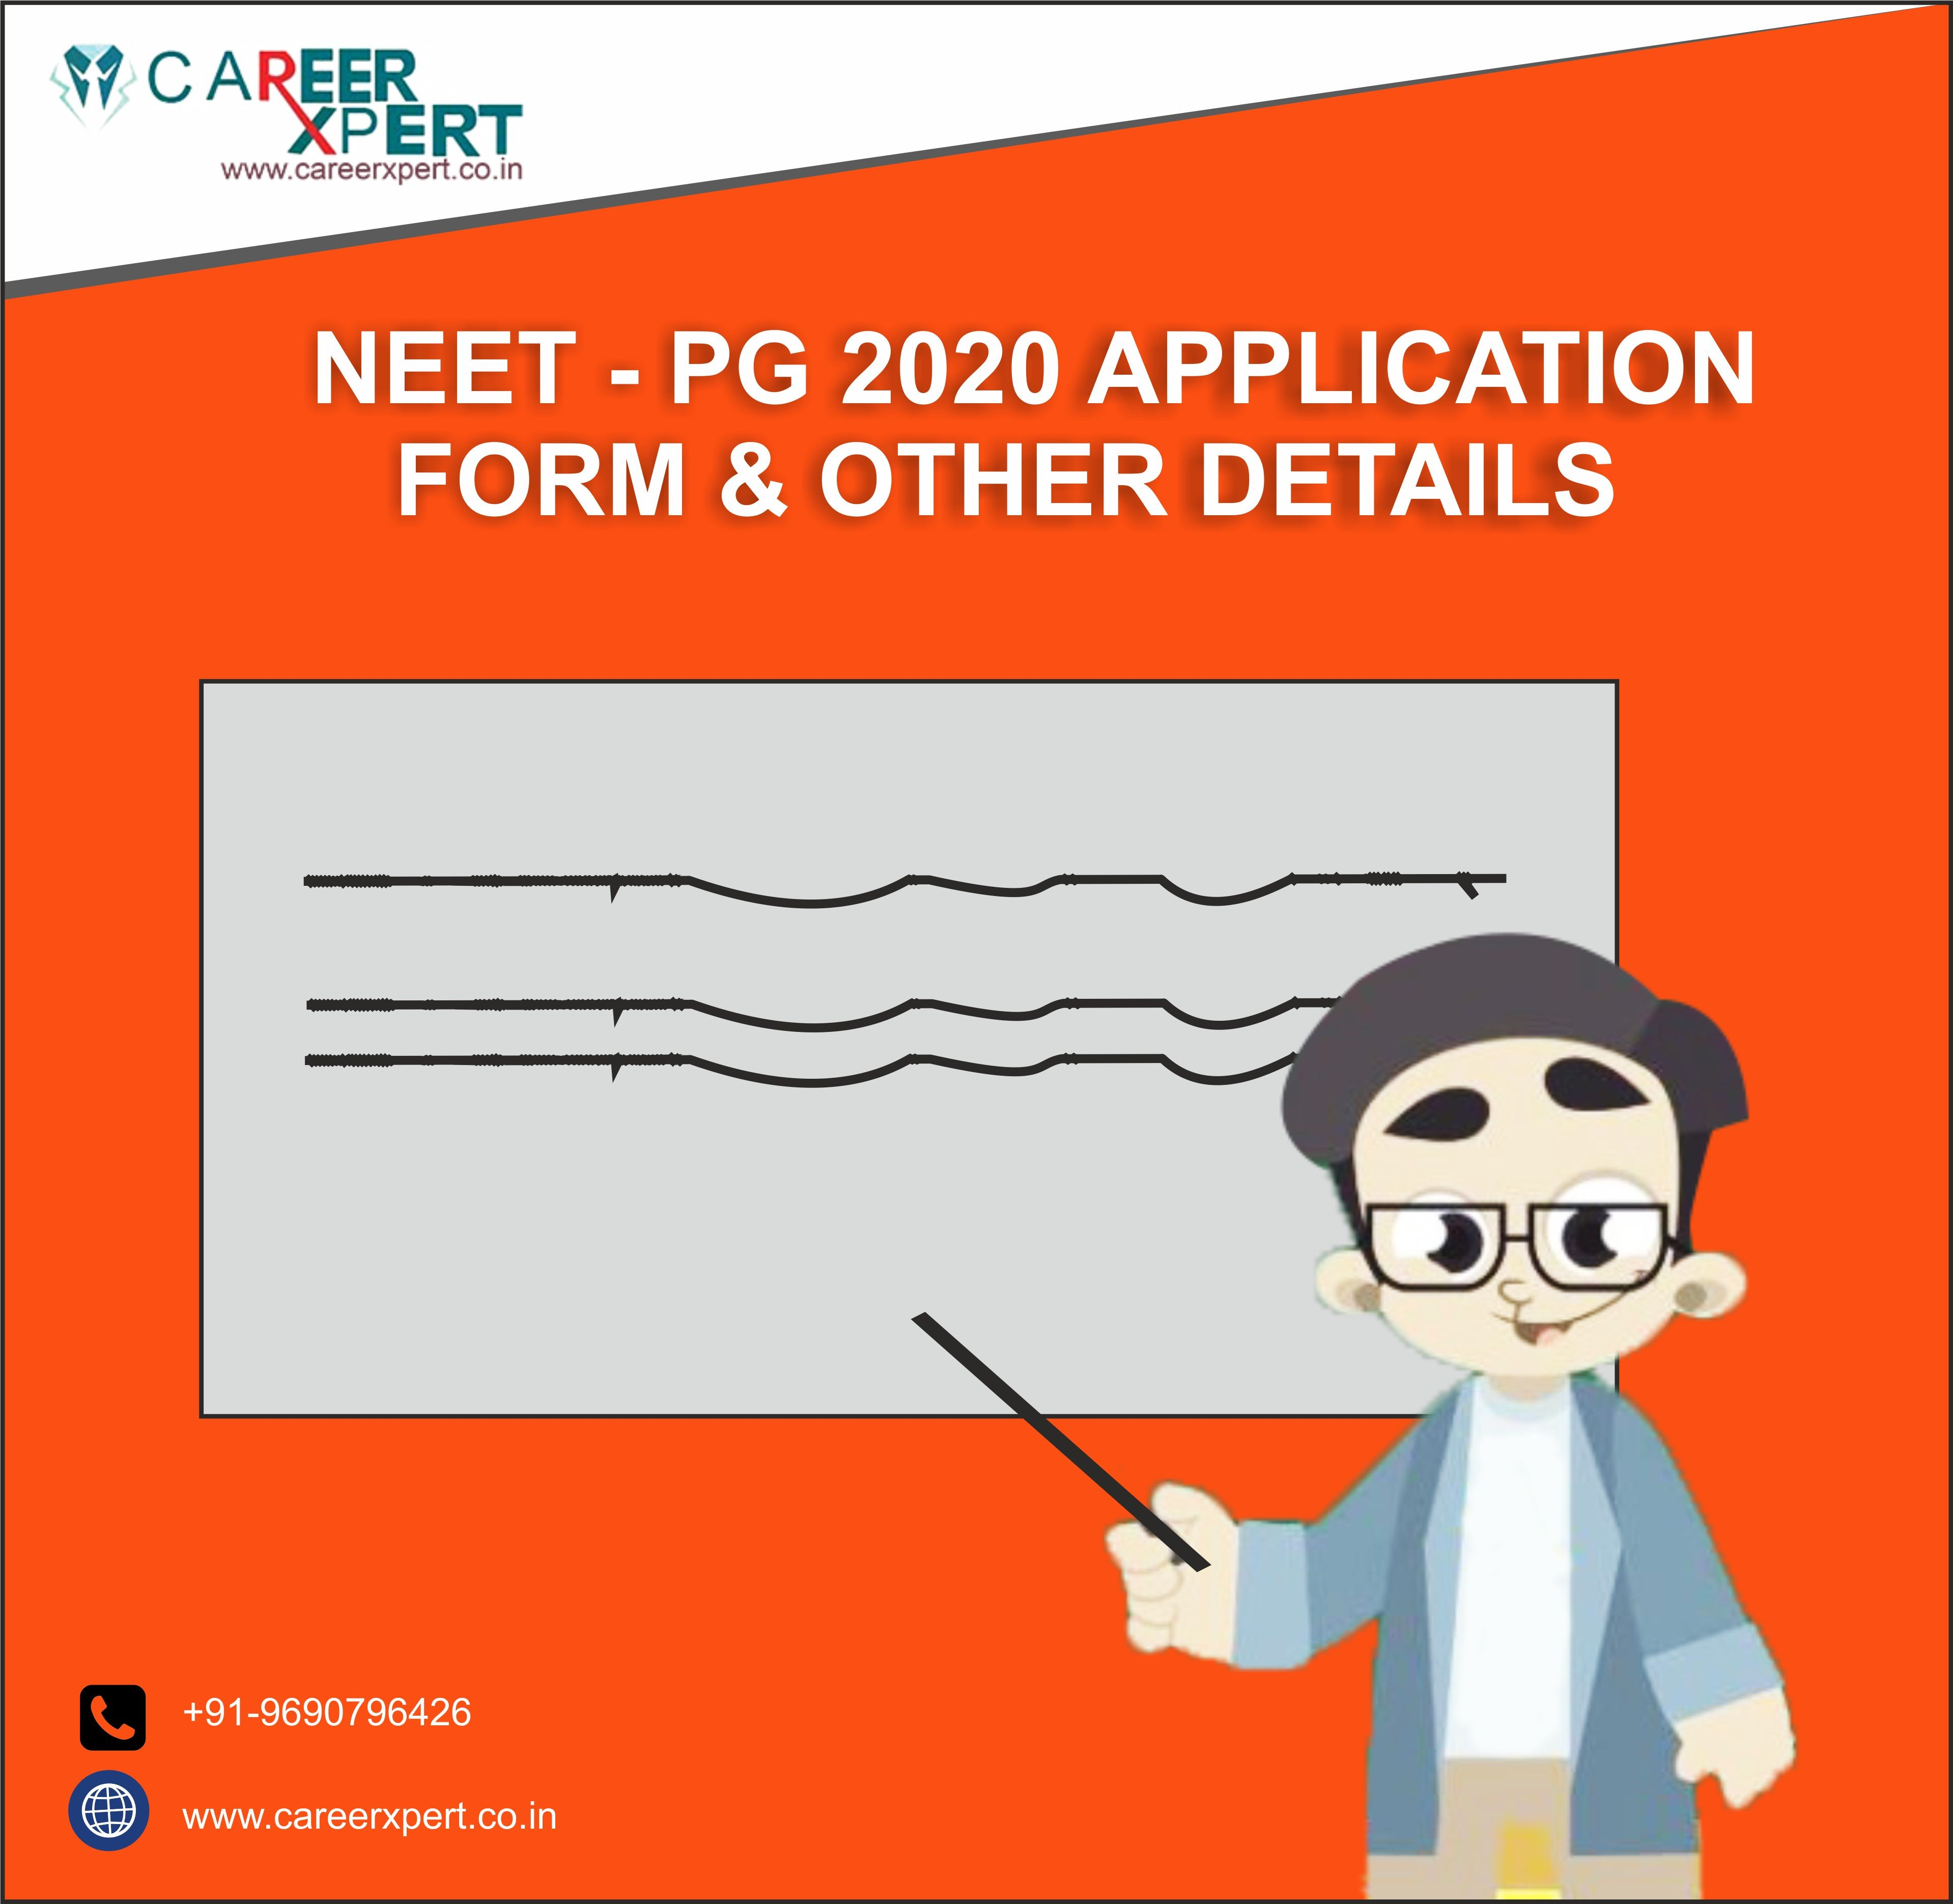 NEET PG 2020 Application Form – Key Points to Remember